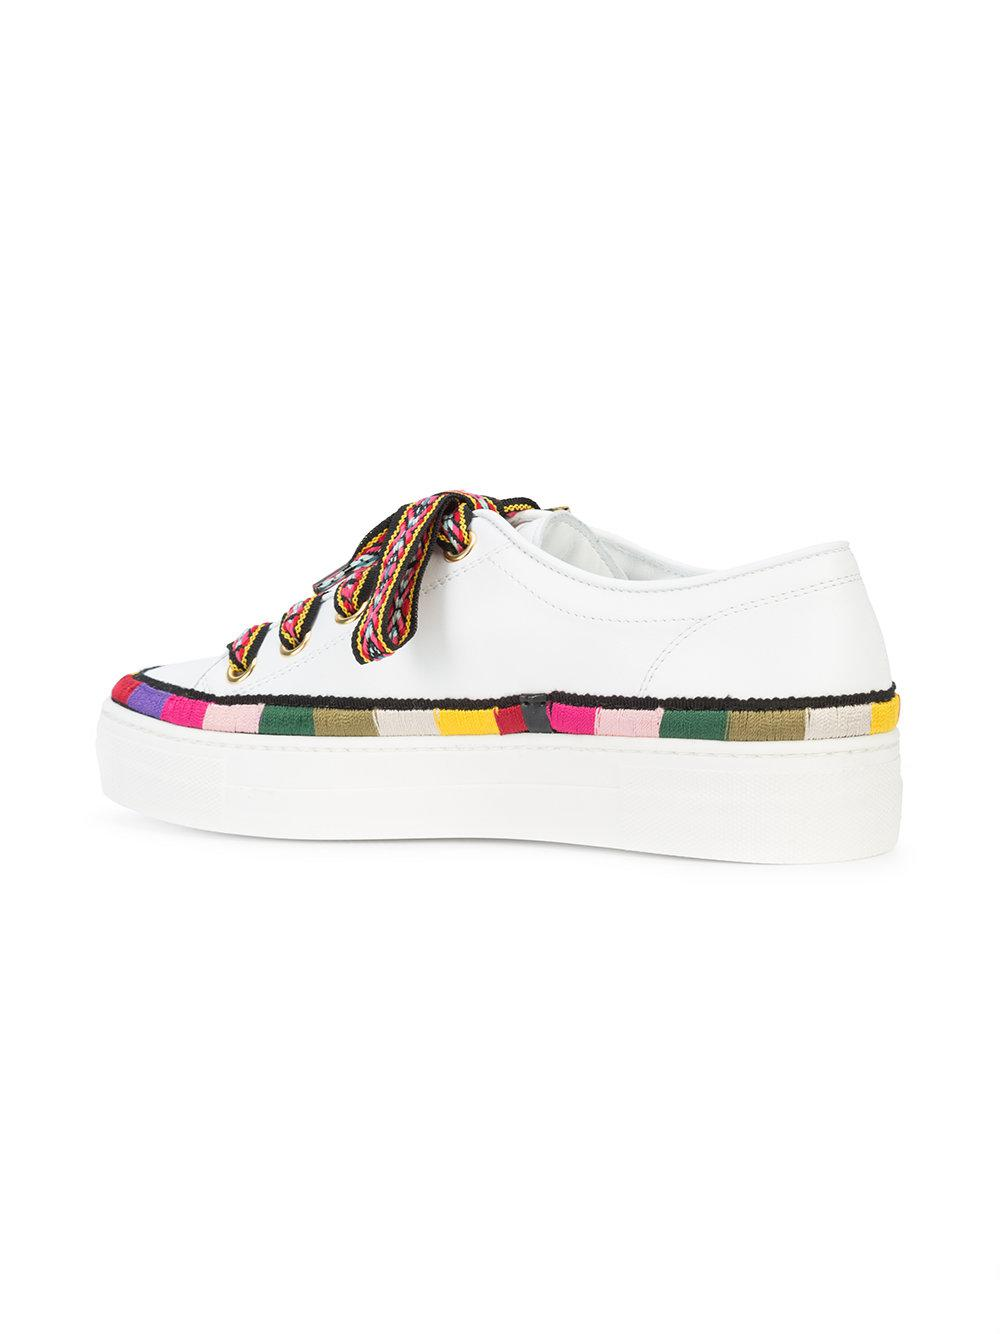 stripe detail lace-up sneakers - White Etro yWmIp1